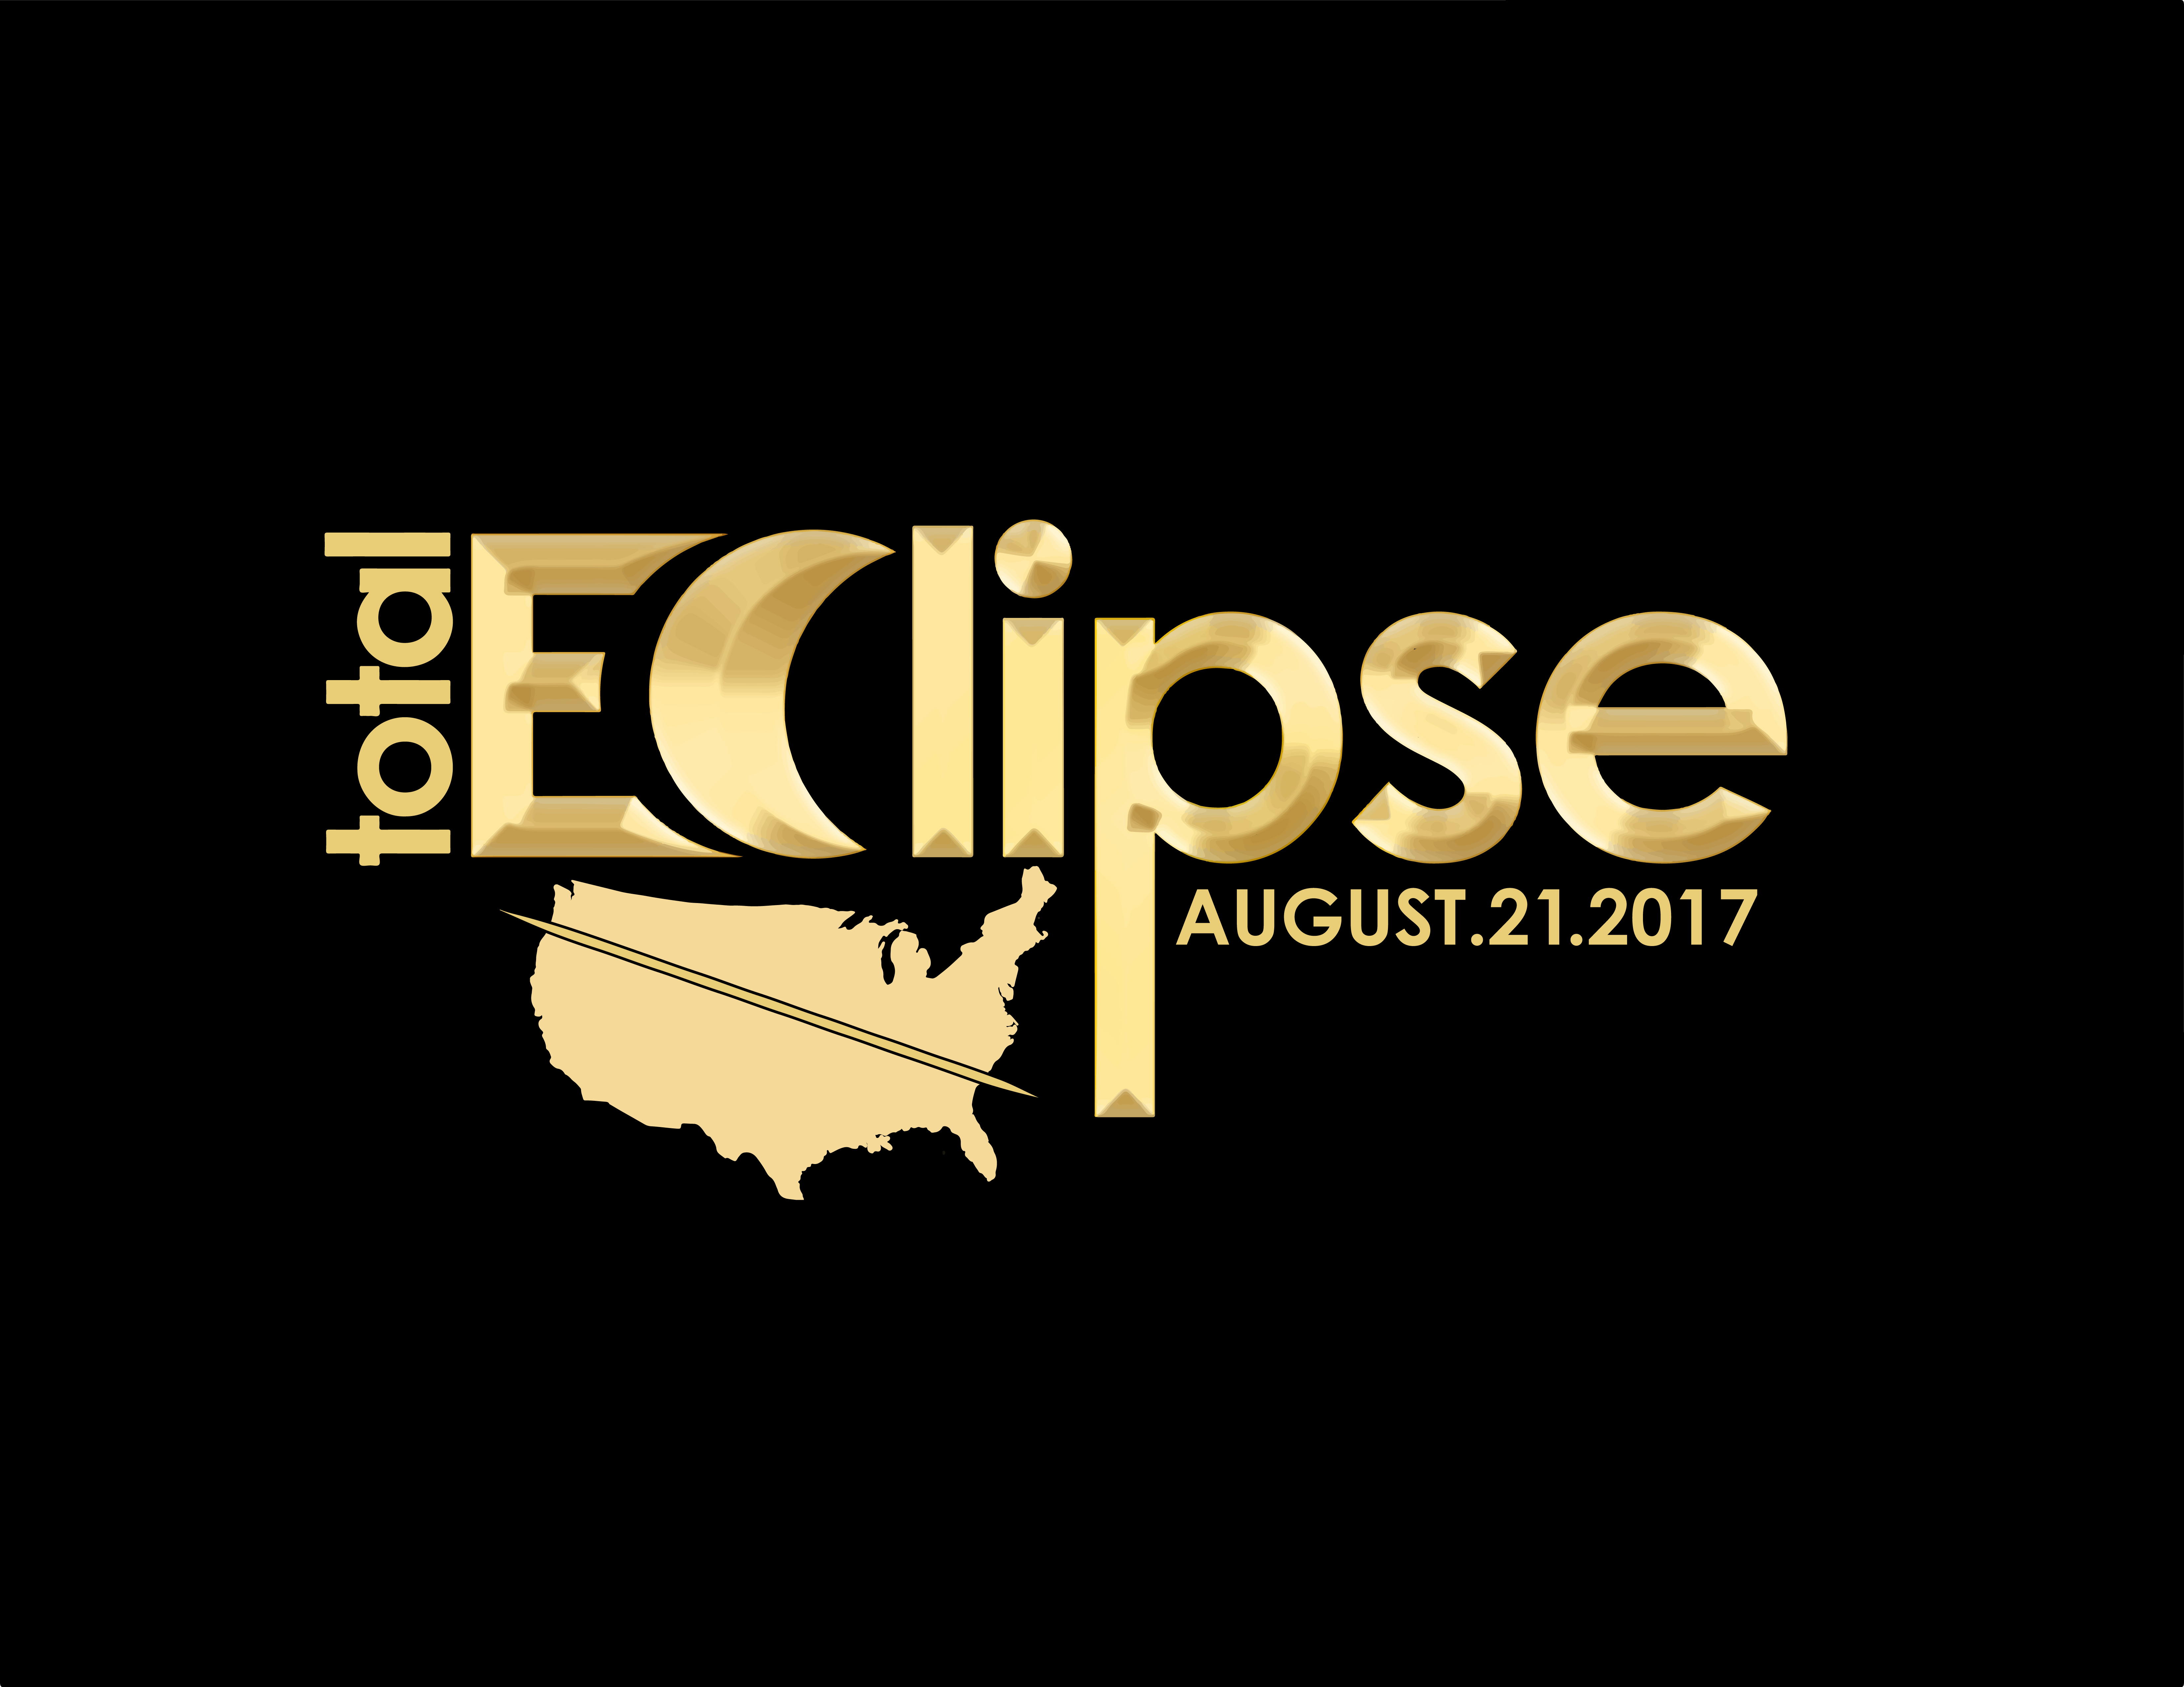 "Black background gold writing ""Total Eclipse August. 21. 2017"""